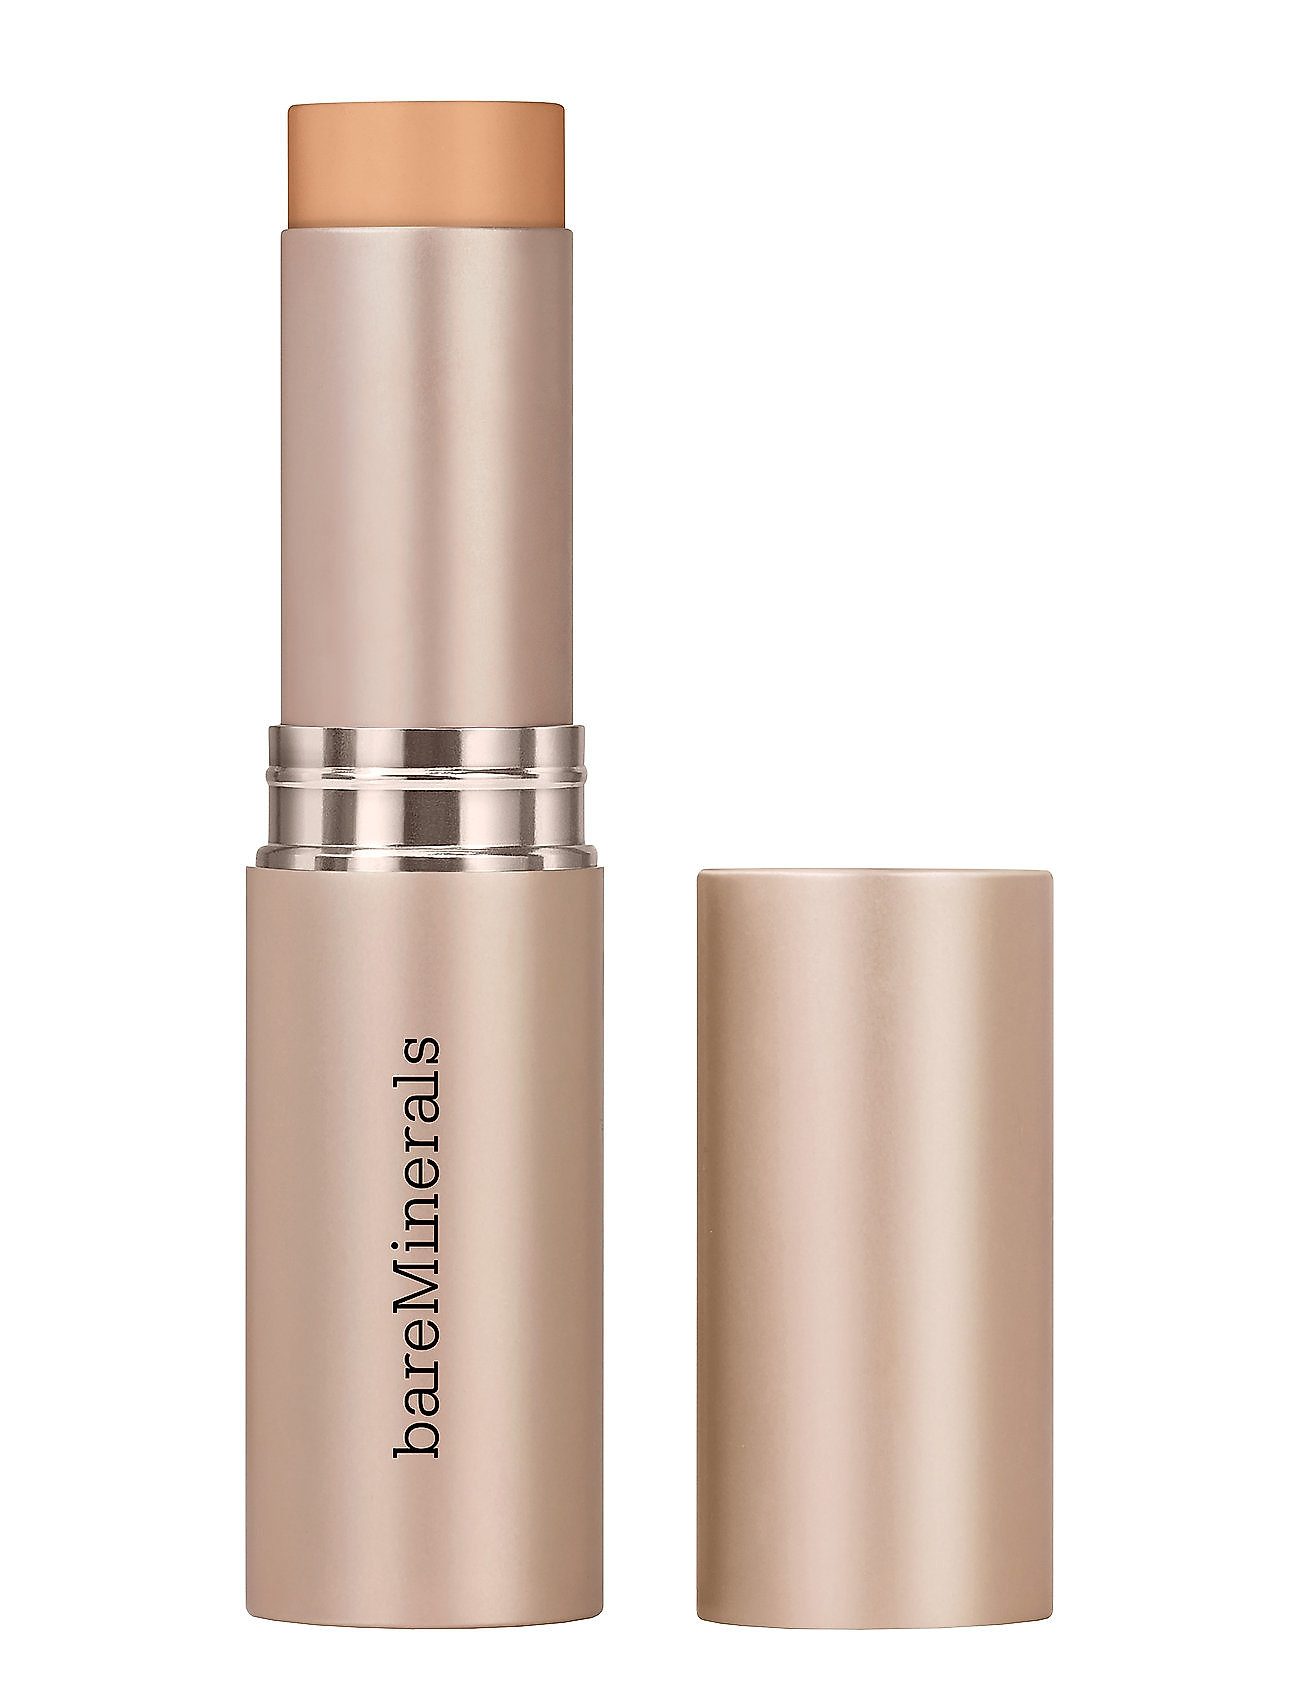 Image of Complexion Rescue Hydrating Foundation Stick Spf 25 Foundation Makeup BareMinerals (3250586889)